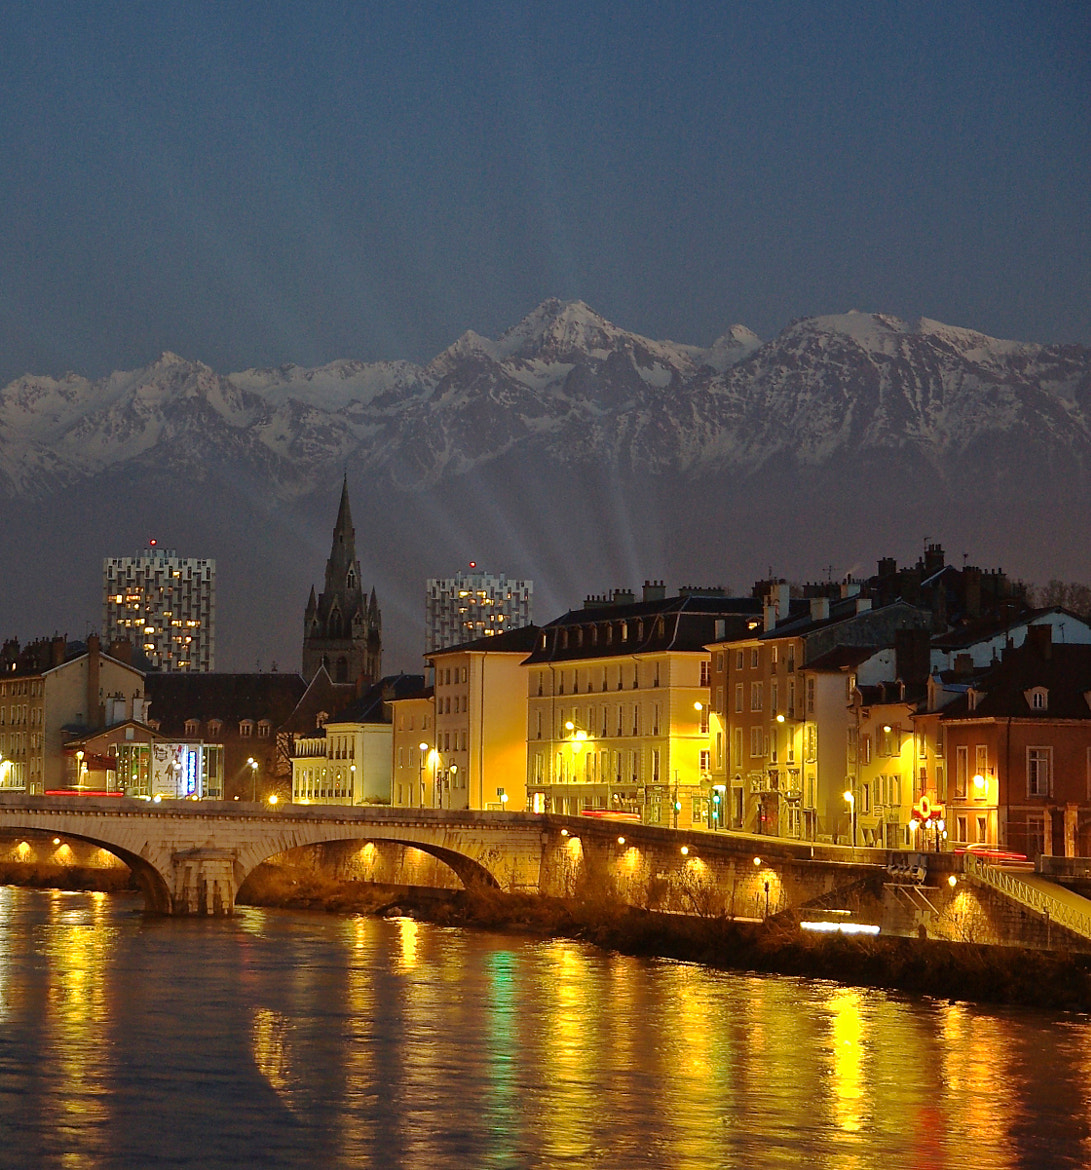 Photograph Night view of Grenoble by Bogdan's travel clicks on 500px